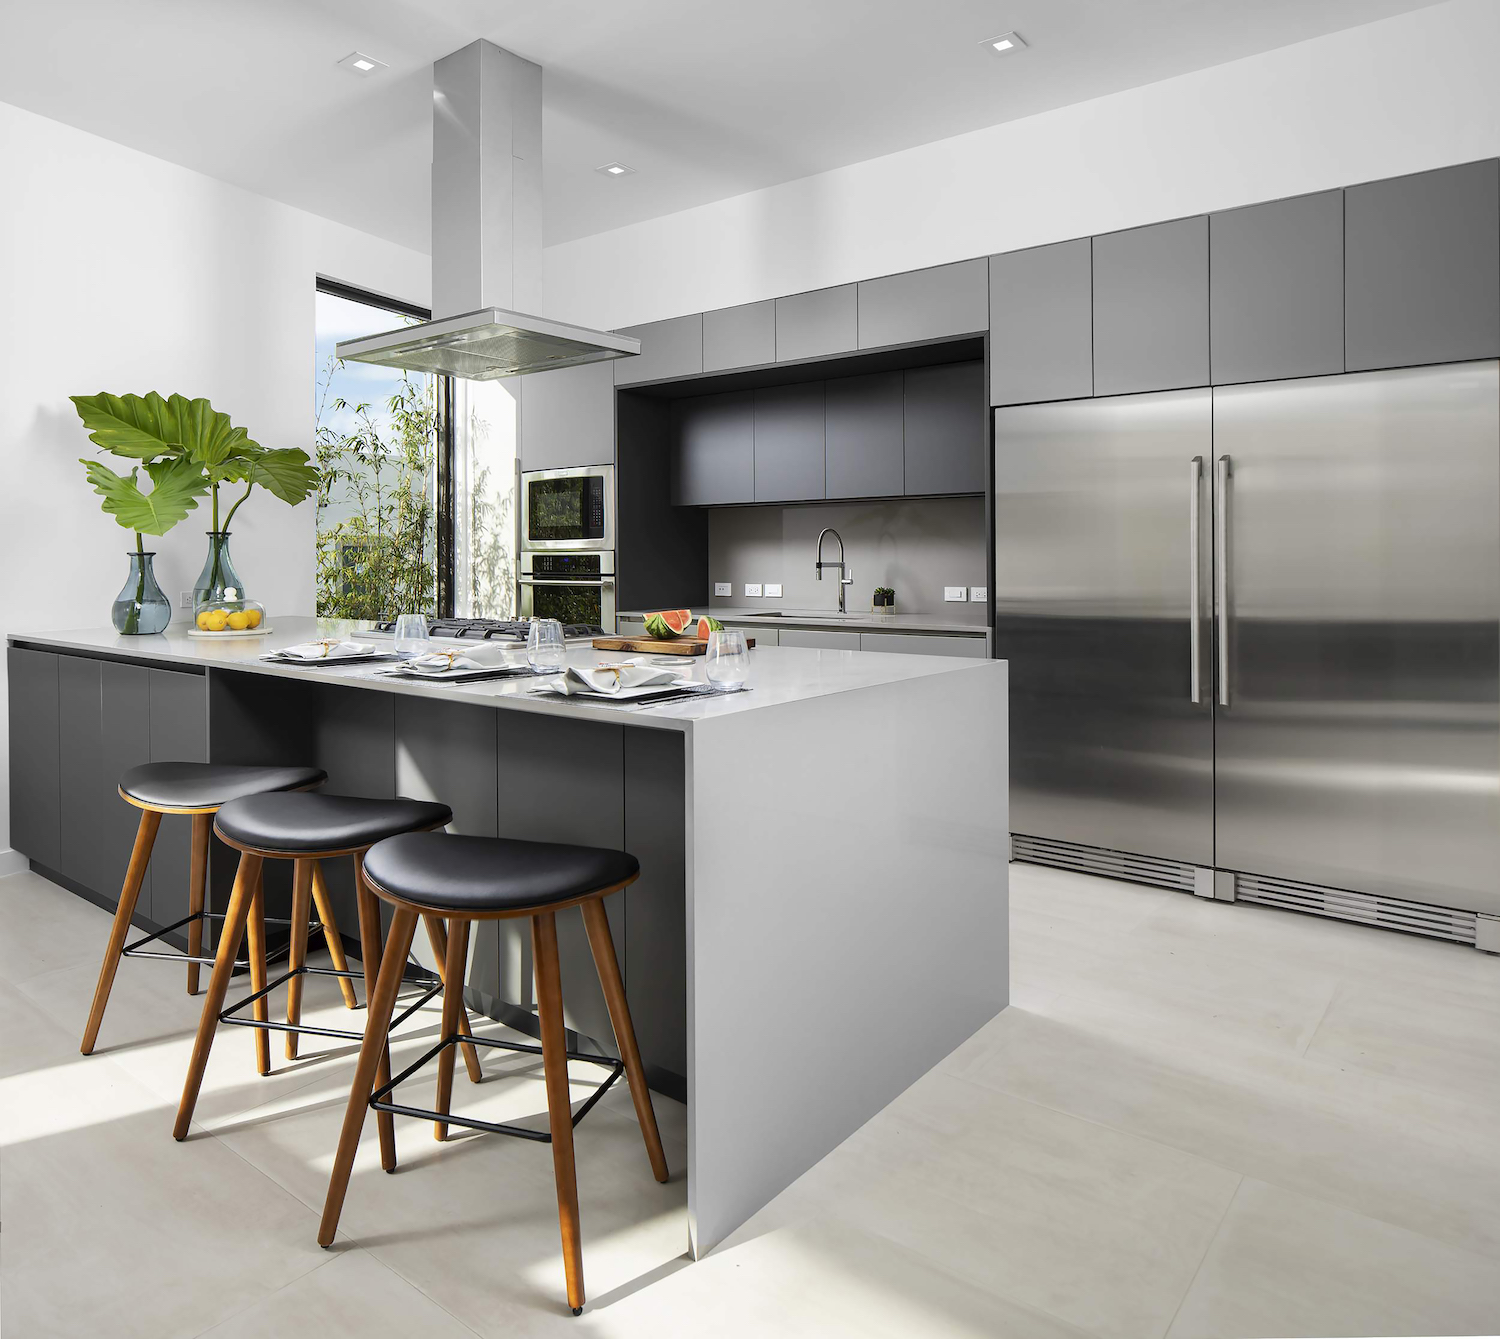 modern kitchen with island and stool bar's chair